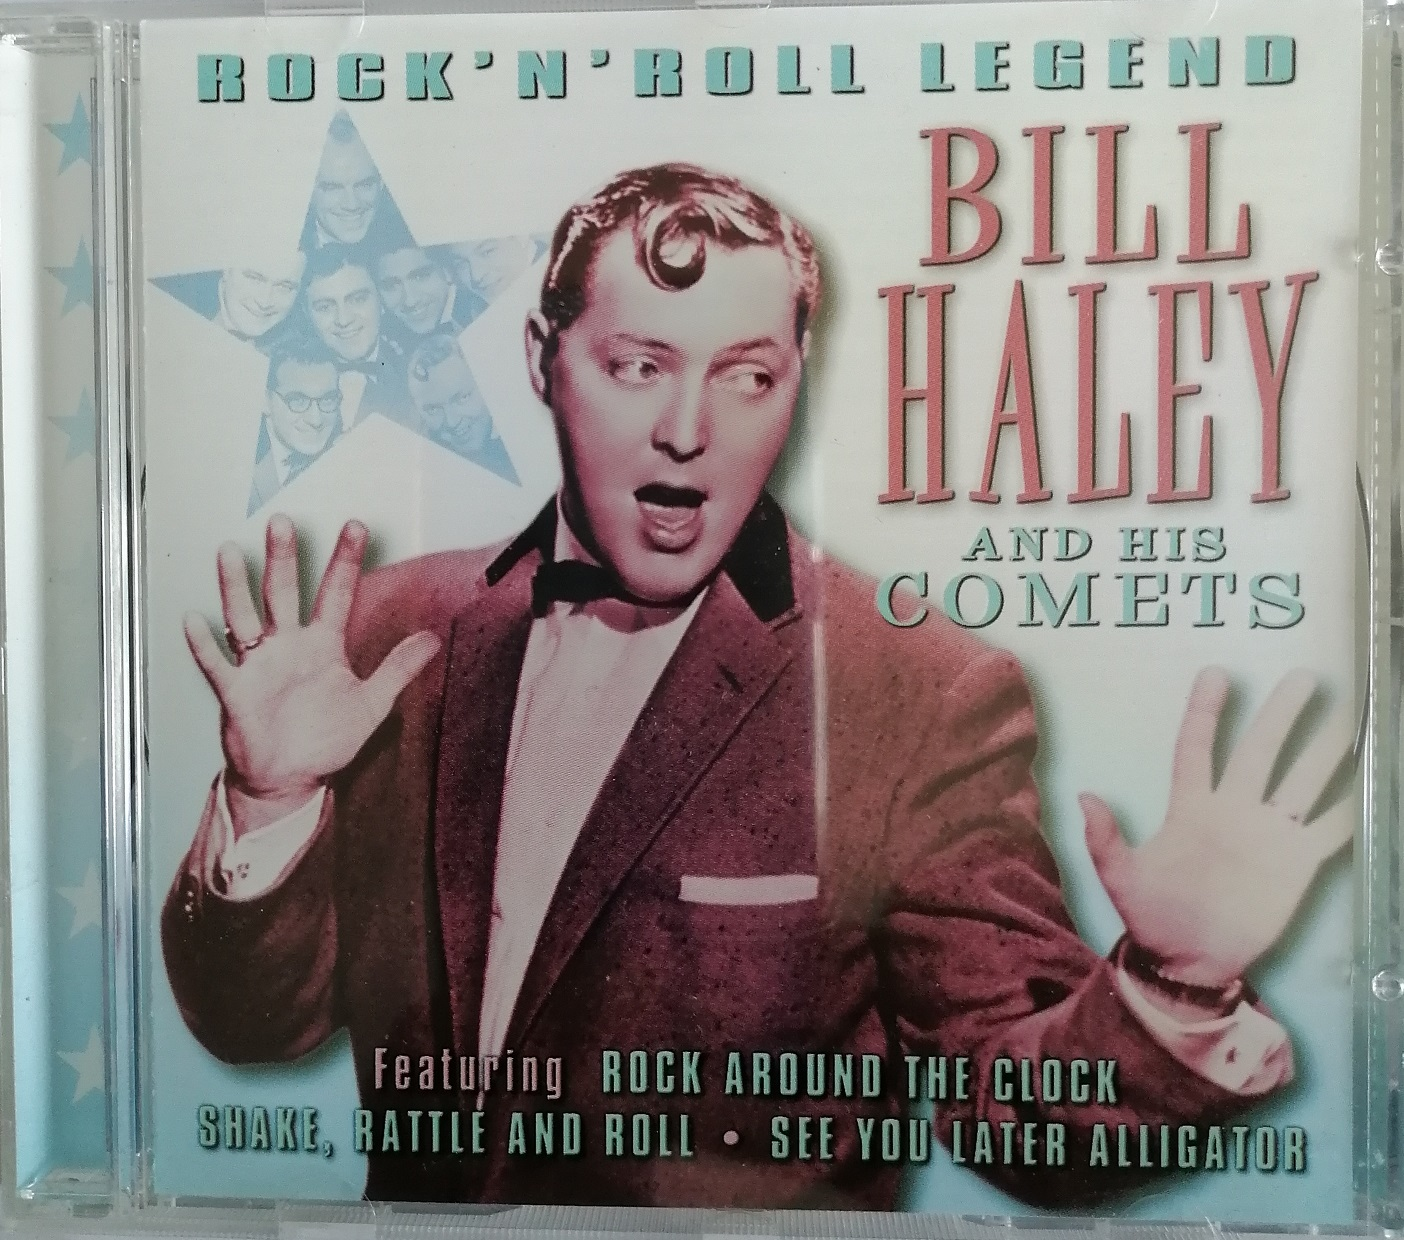 Bill Haley and his comets - CD